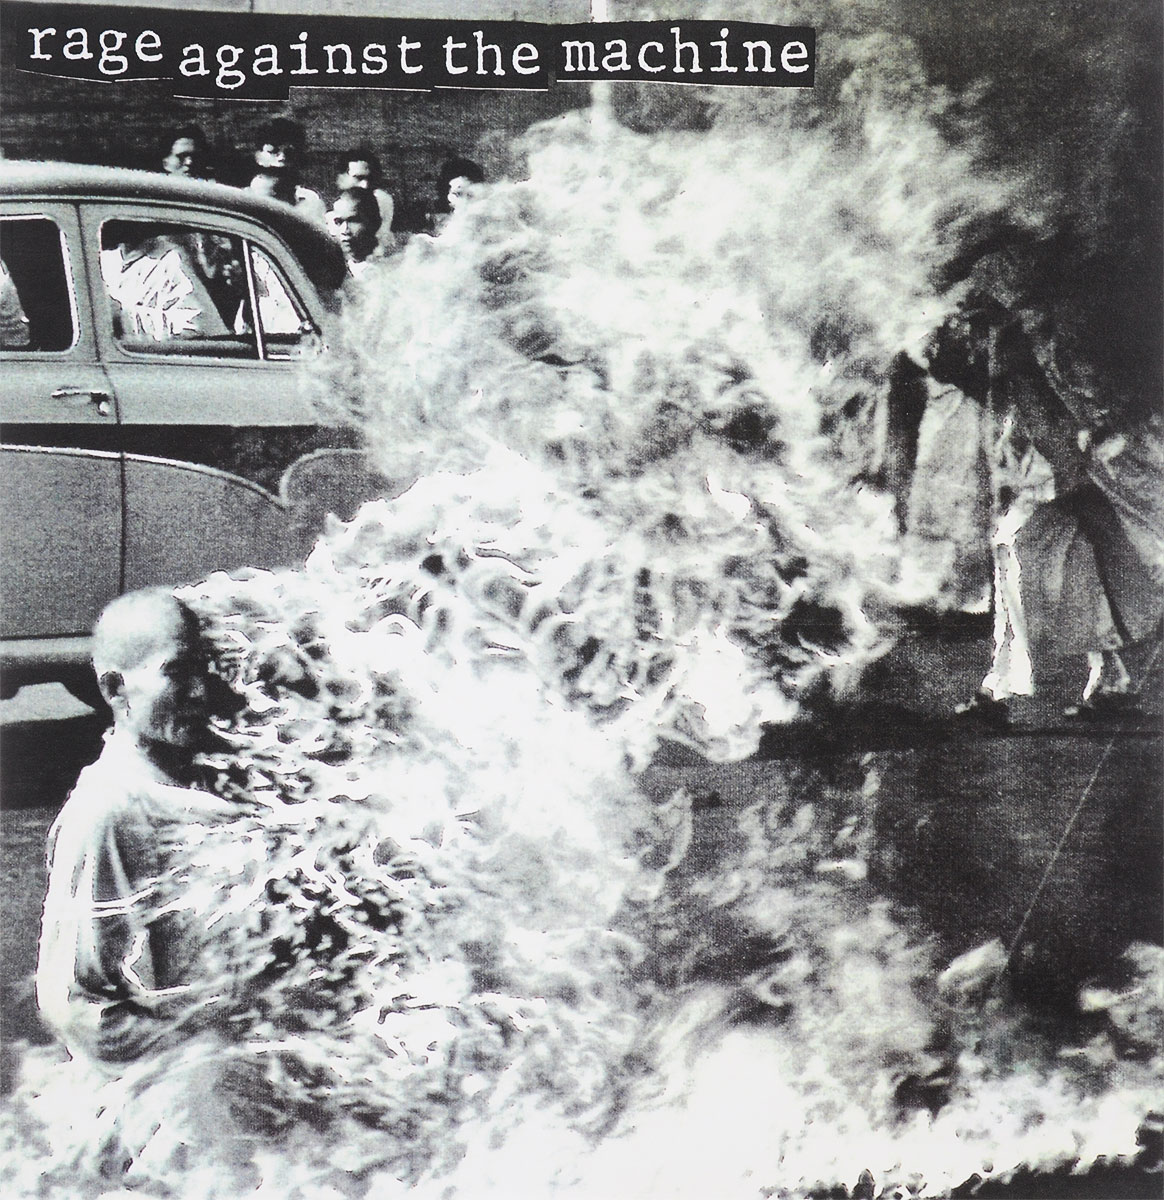 Rage Against The Machine Rage Against The Machine. Rage Against The Machine (LP) 2500mw diy laser engraving machine diy marking machine diy laser engrave machine advanced toyssupport benbox software